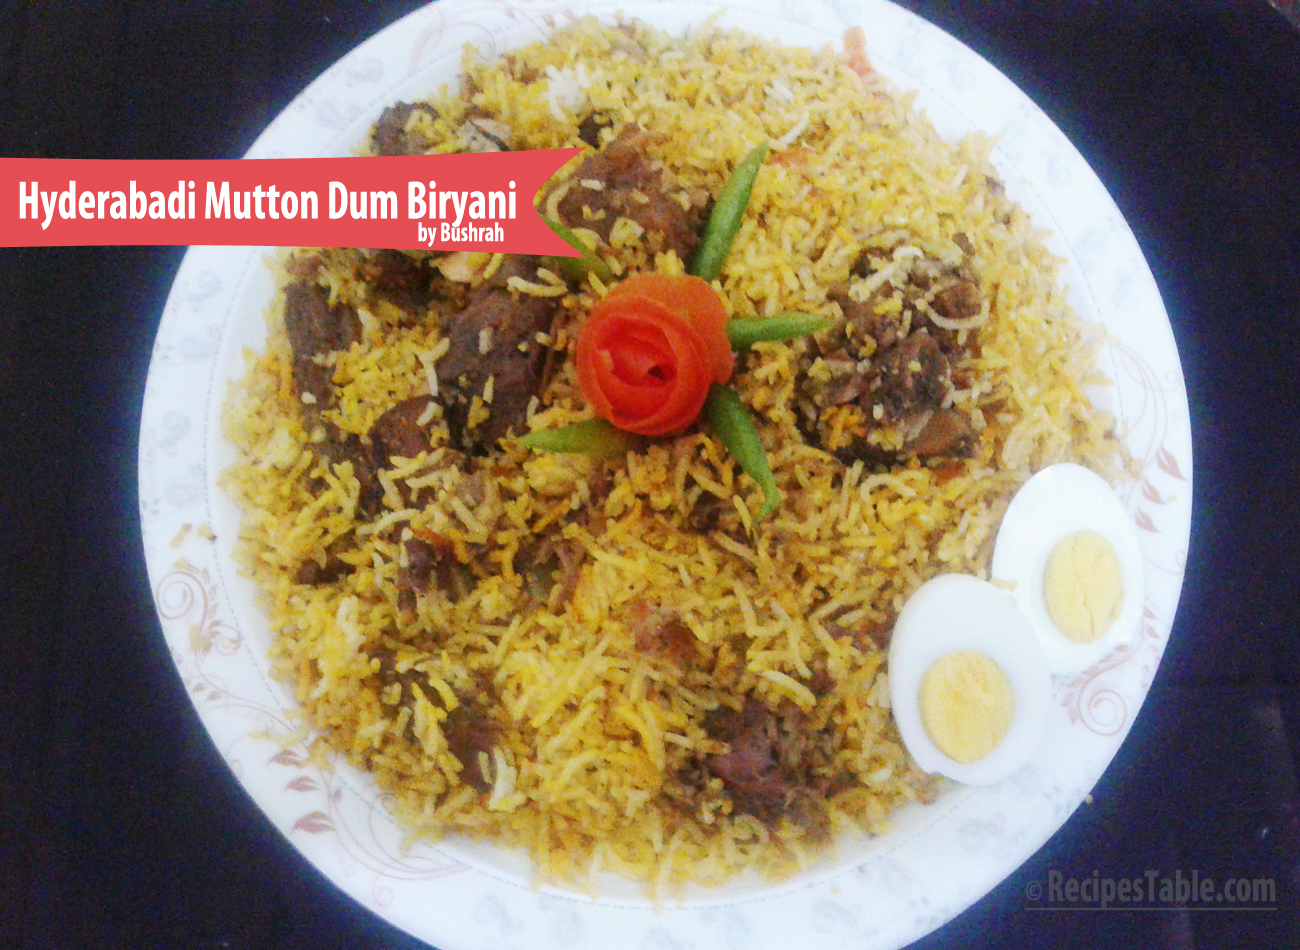 Hyderabadi Mutton Dum Biryani recipe